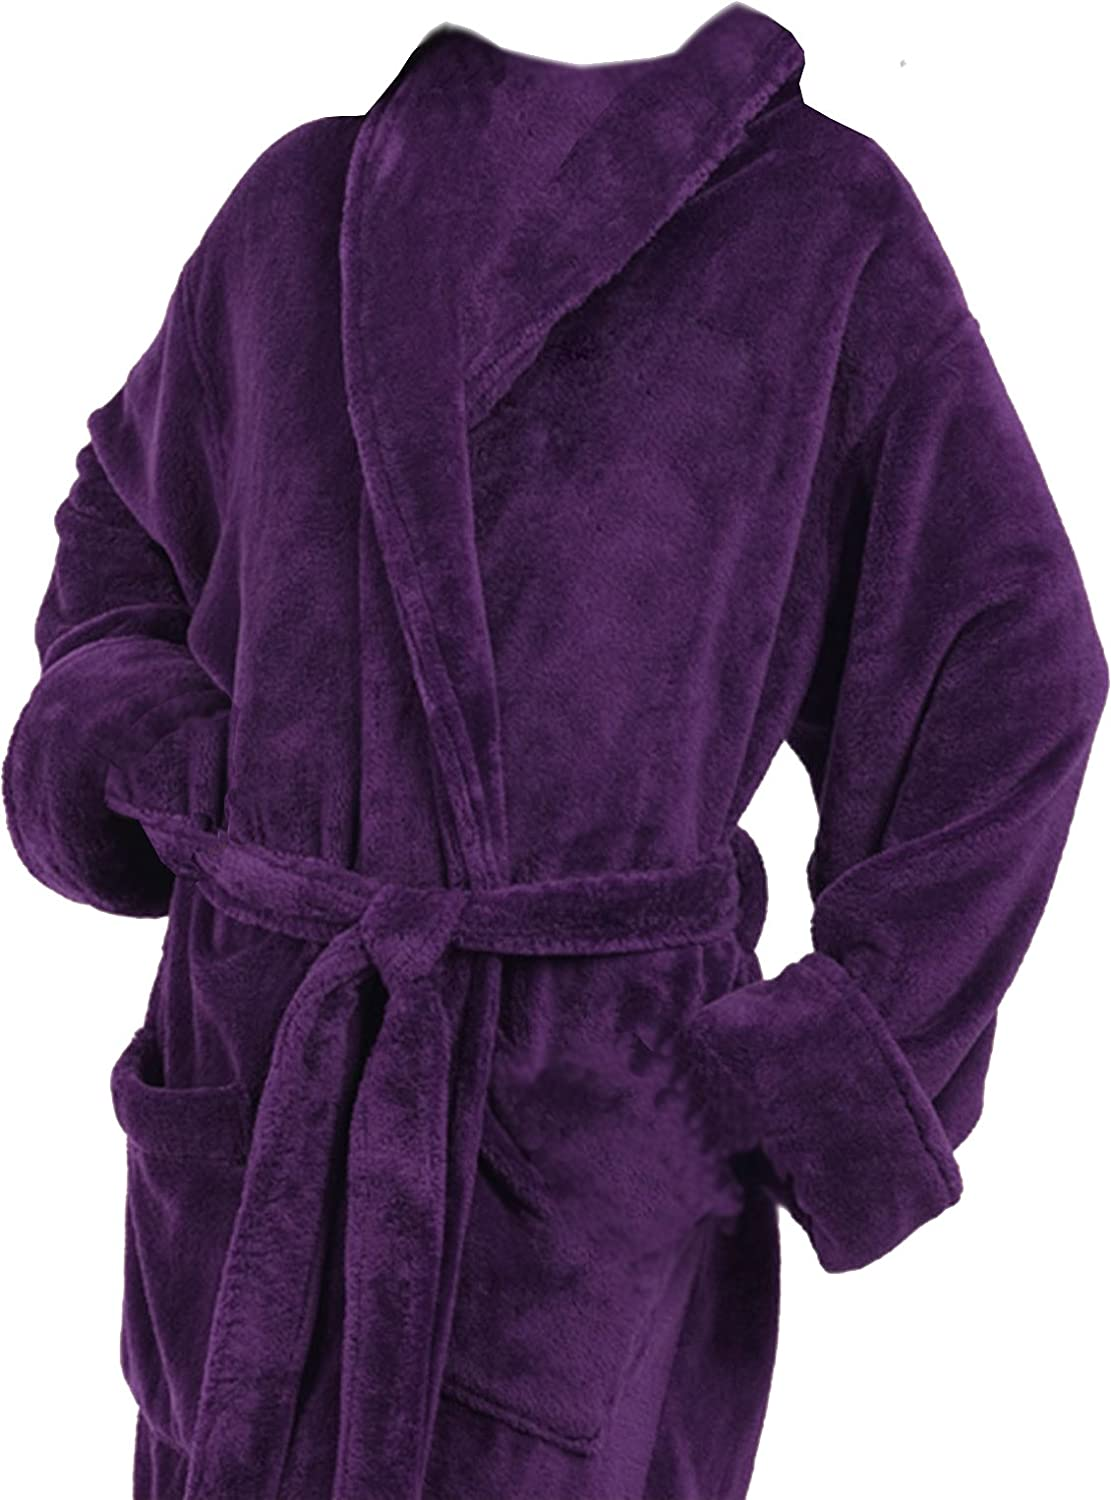 Tri Color Robes Mens Microfiber Plush Luxury Robe 102419